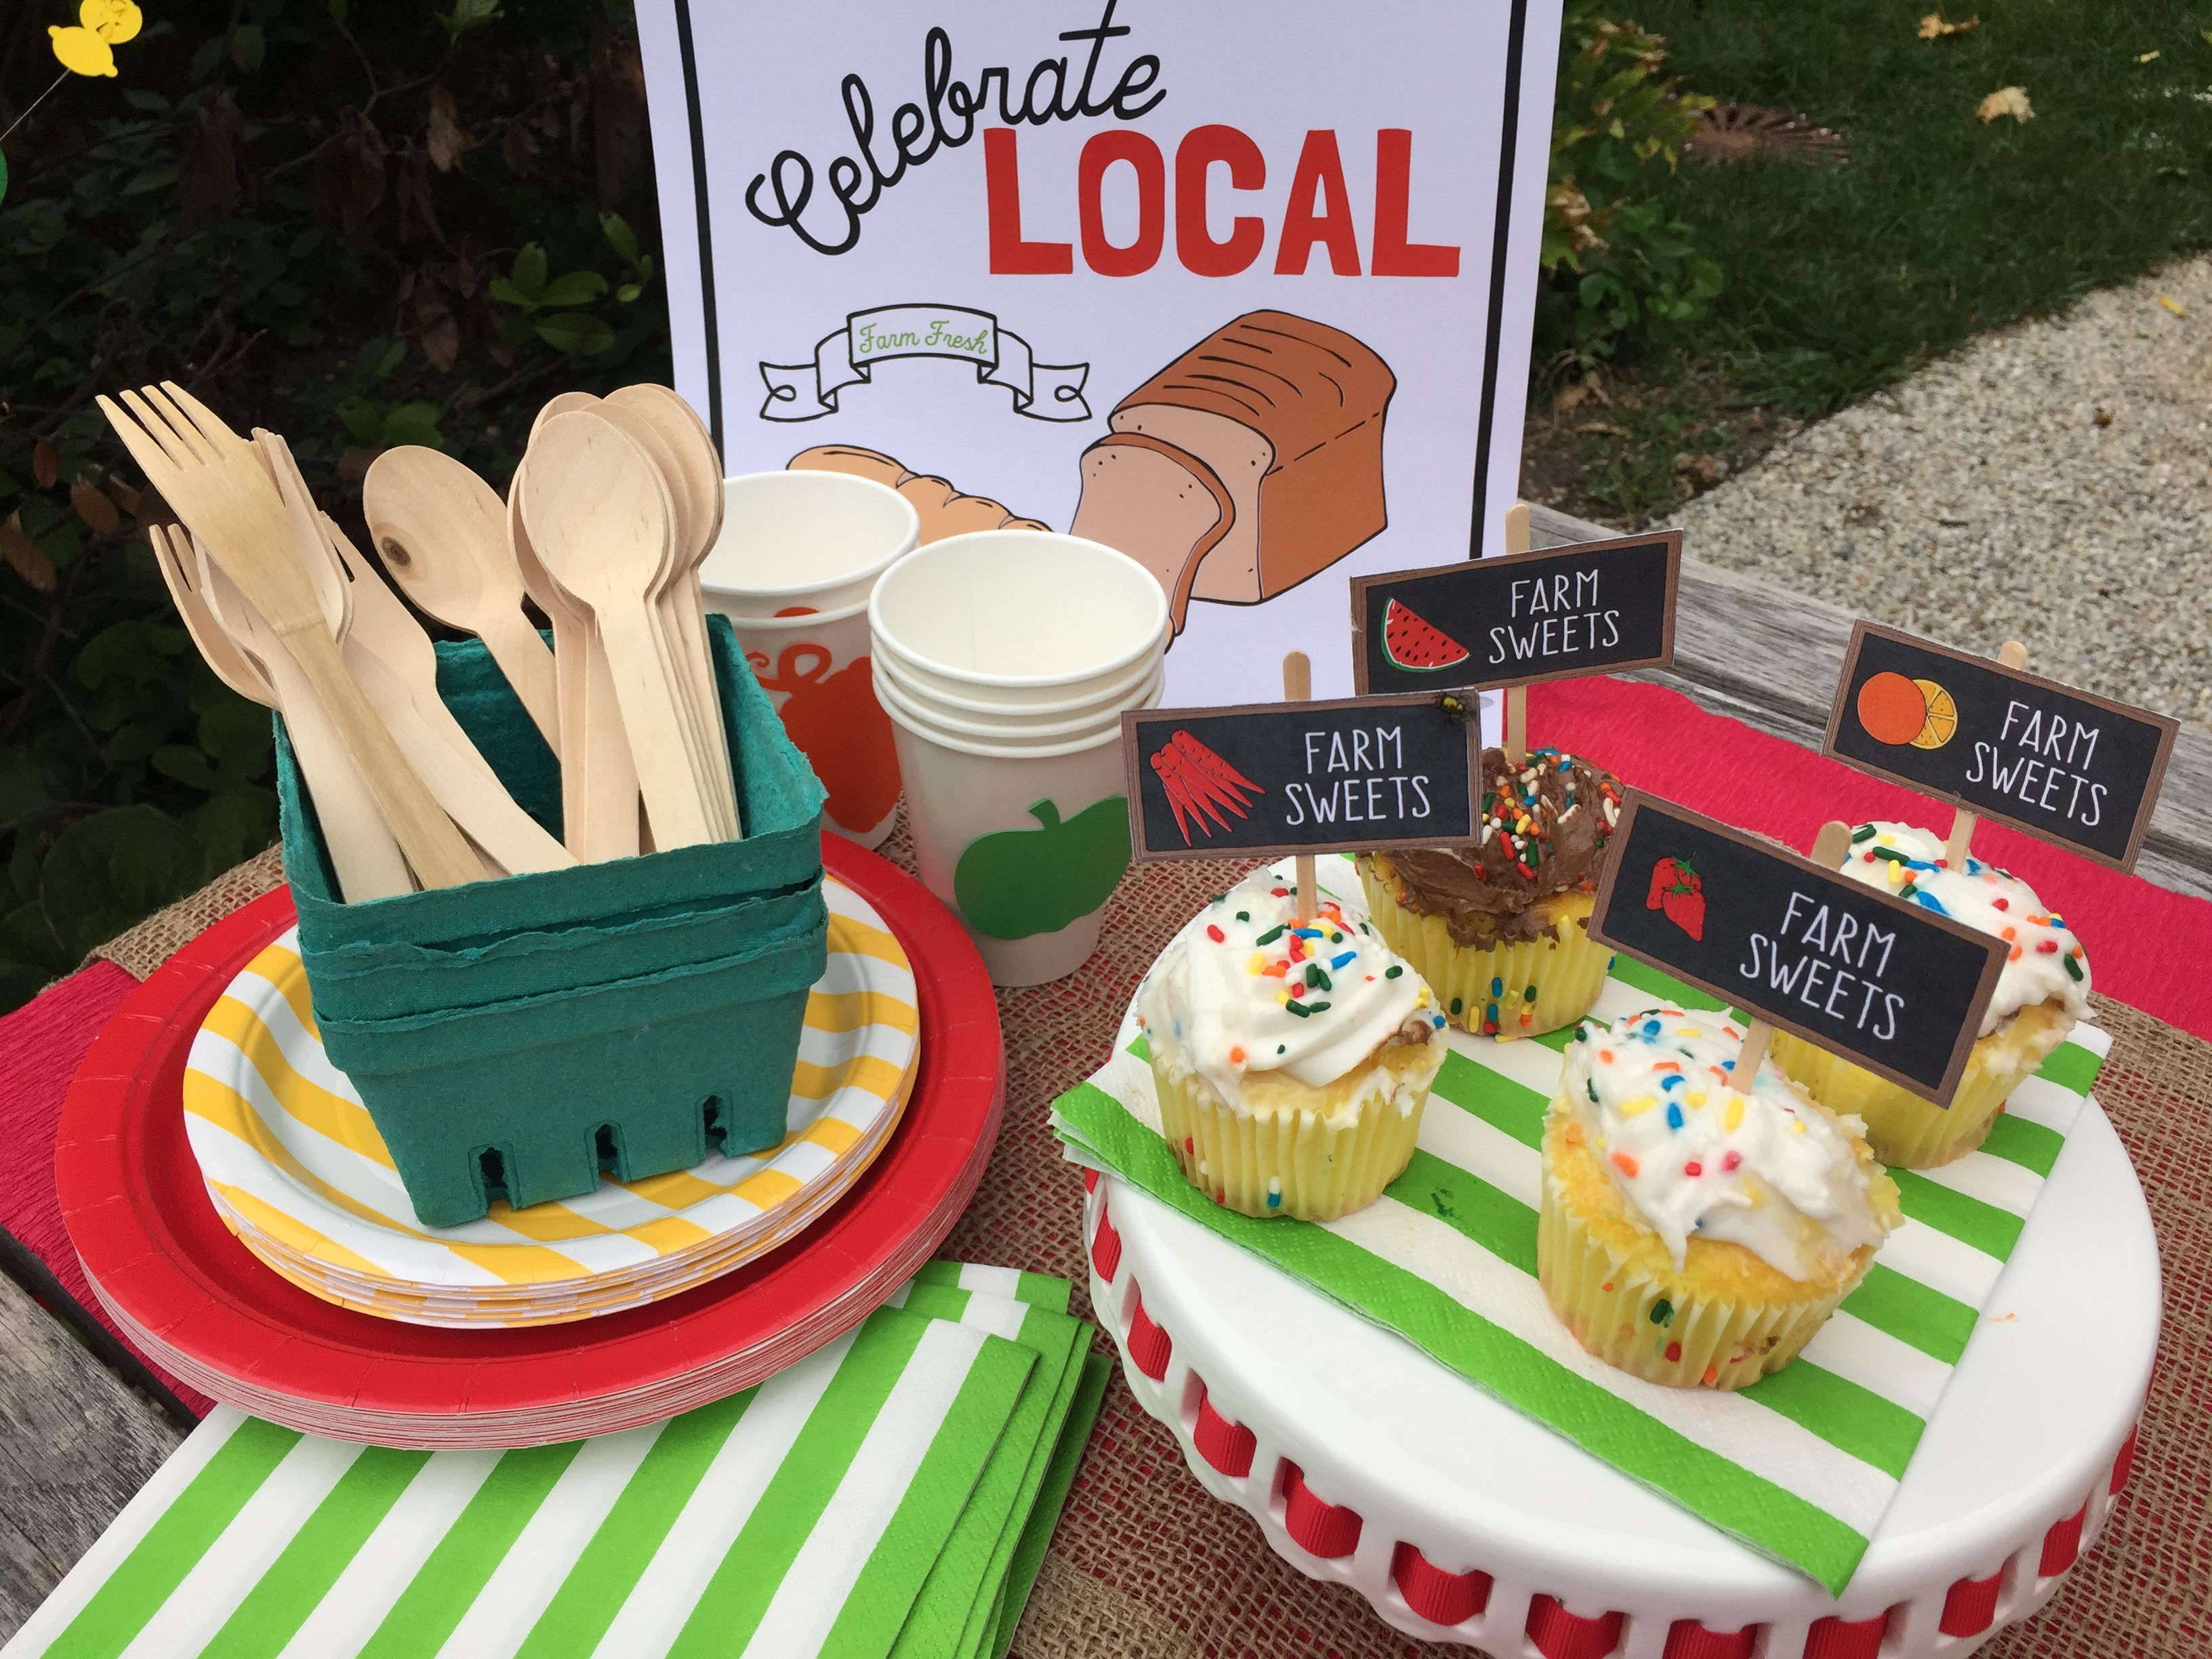 The weekly Saturday walk to the Farmer's Market has become a tradition for many kids.  Share the experience with the Farm Fresh party kit, which features old-timey produce signs, a creative